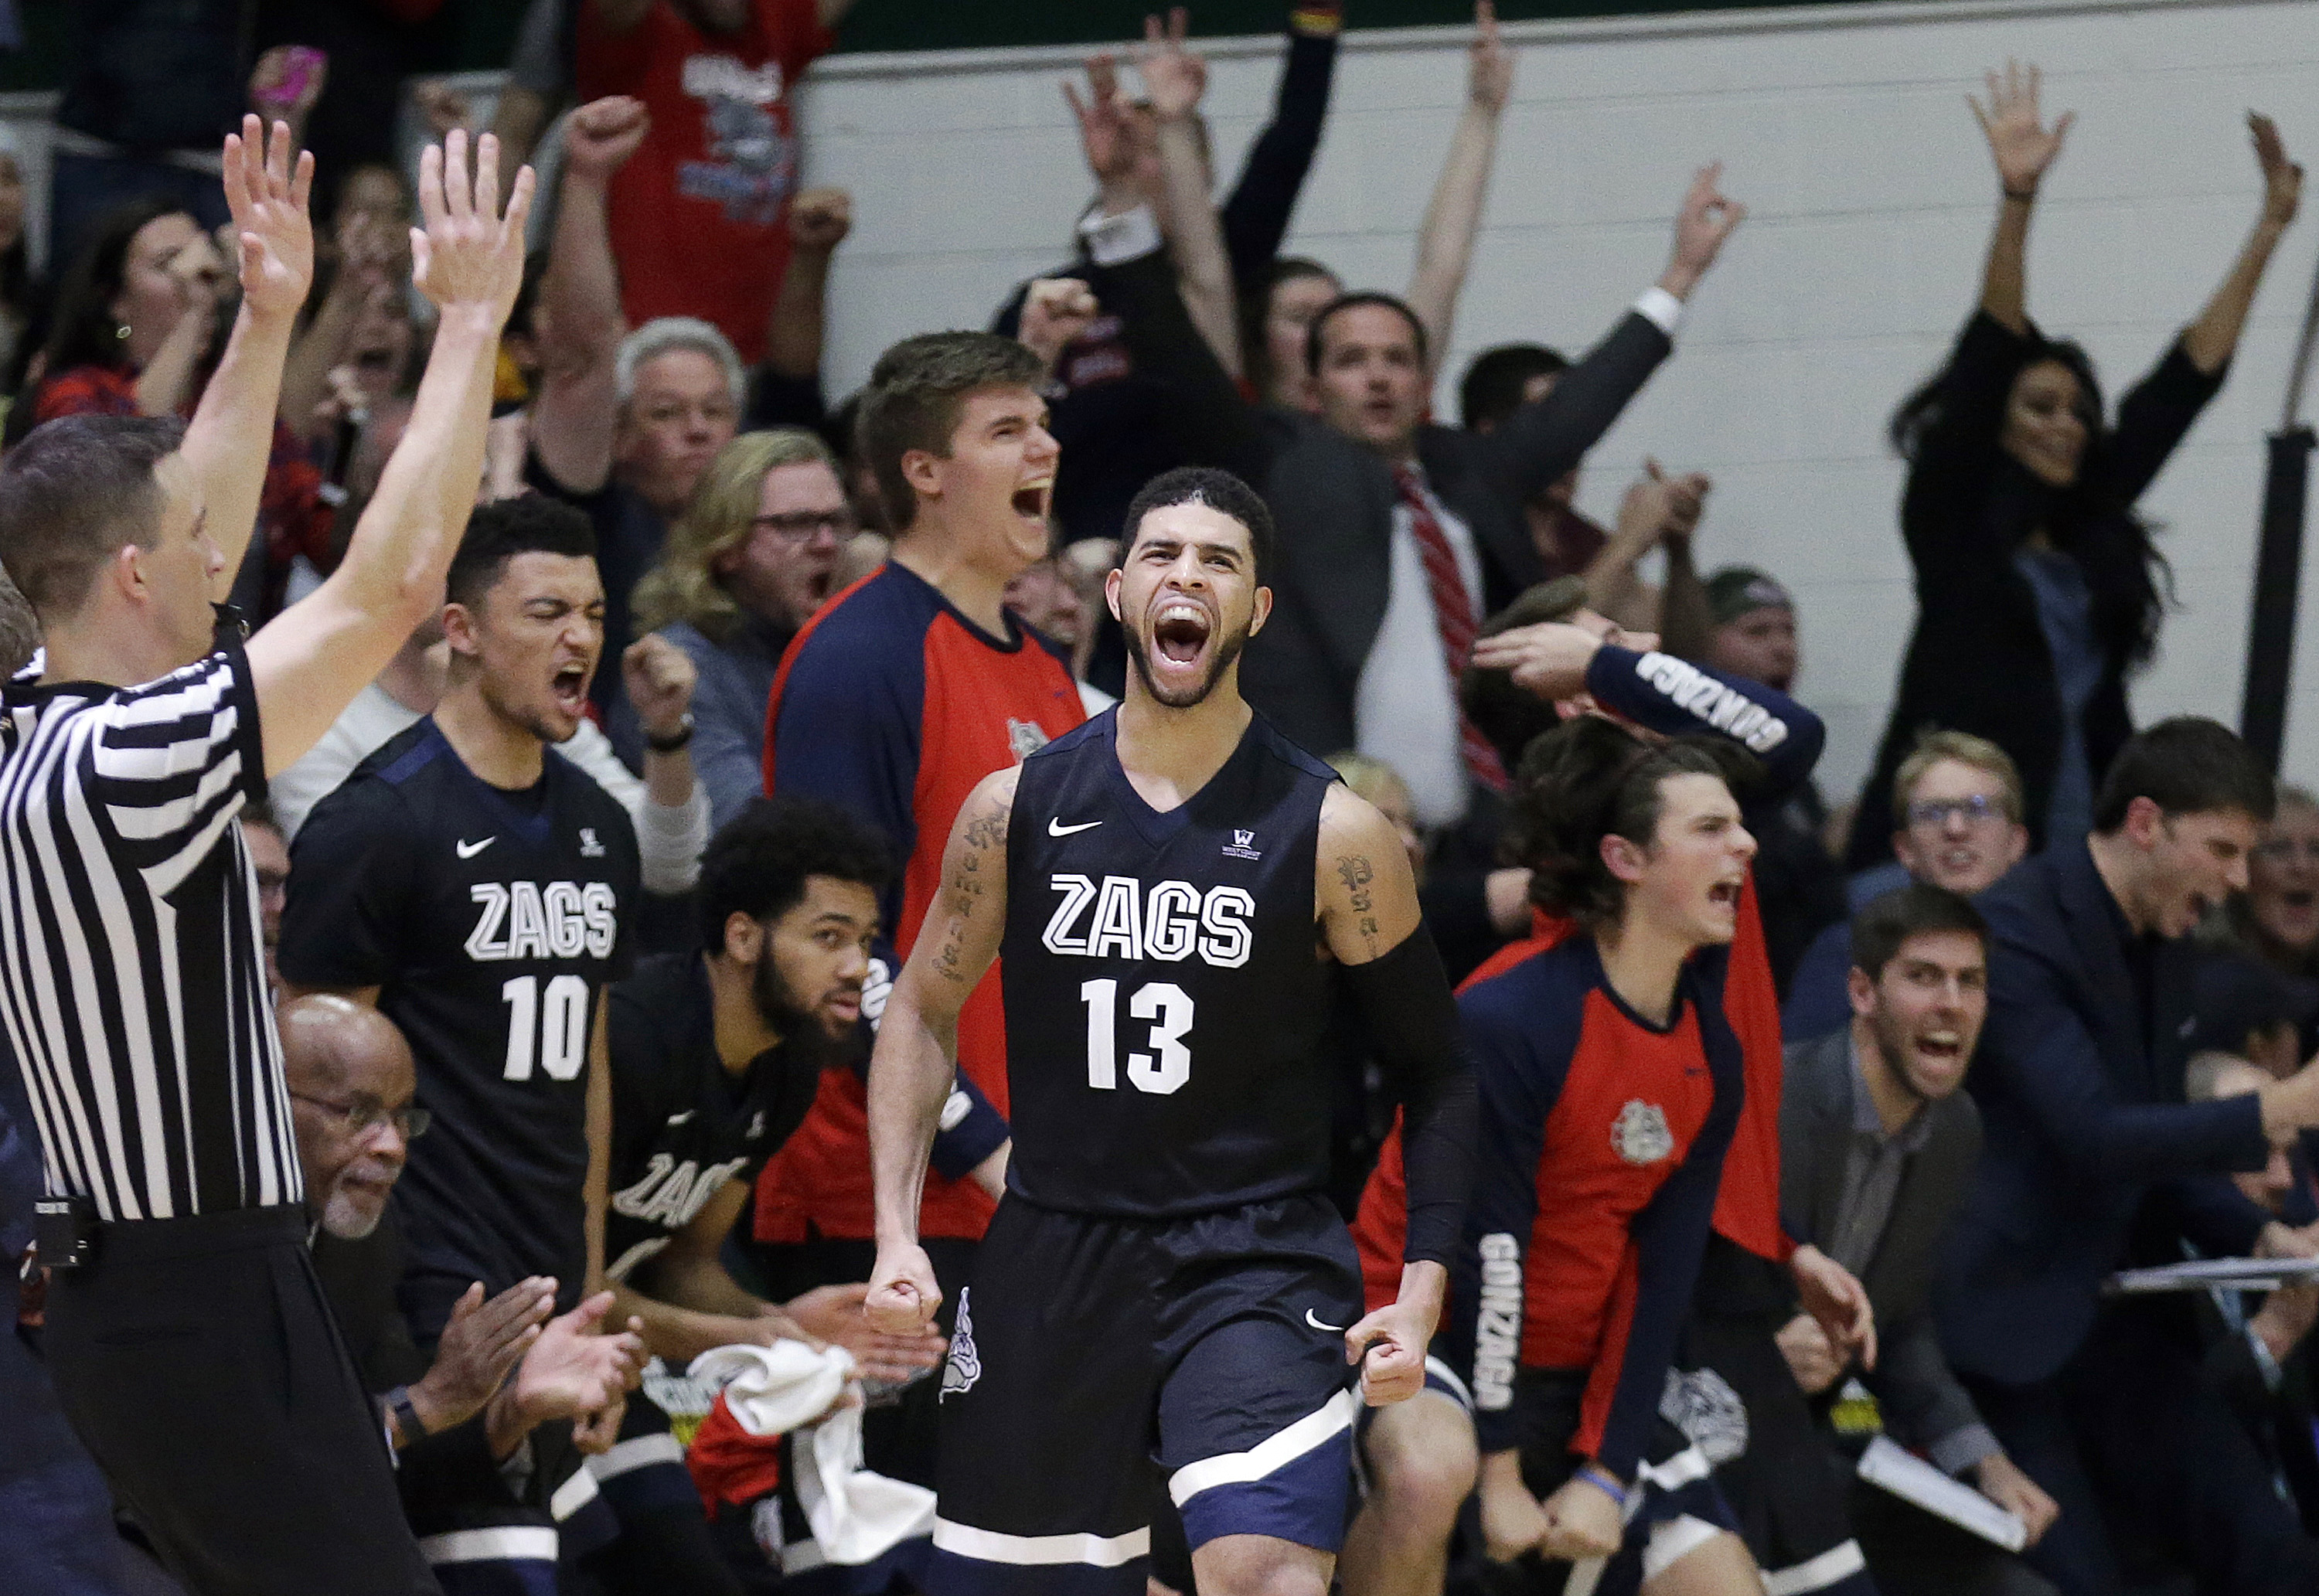 Gonzaga guard Josh Perkins (13) celebrates after making a 3-point basket against San Francisco during the second half of an NCAA college basketball game in San Francisco, Saturday, Jan. 2, 2016. Gonzaga won 102-94 in overtime. (AP Photo/Jeff Chiu)